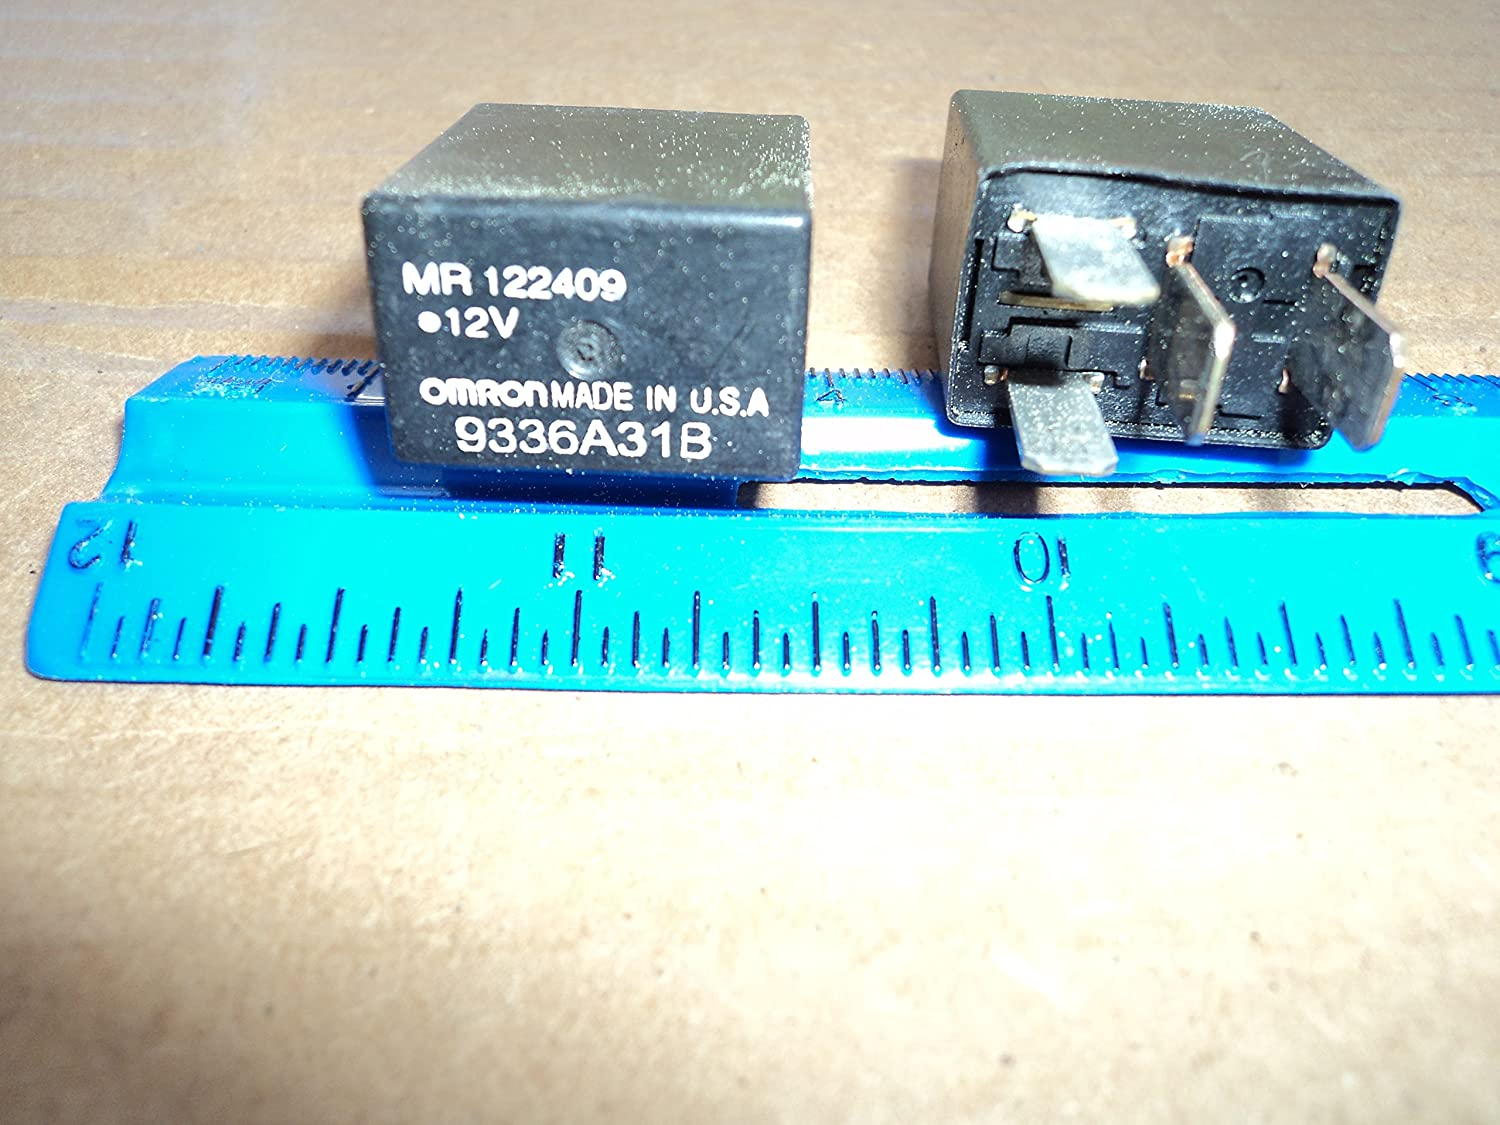 Amazoncom Omron Chrysler Plymouth Dodge Jeep Eagle Relay Mr - Spdt relay eagle